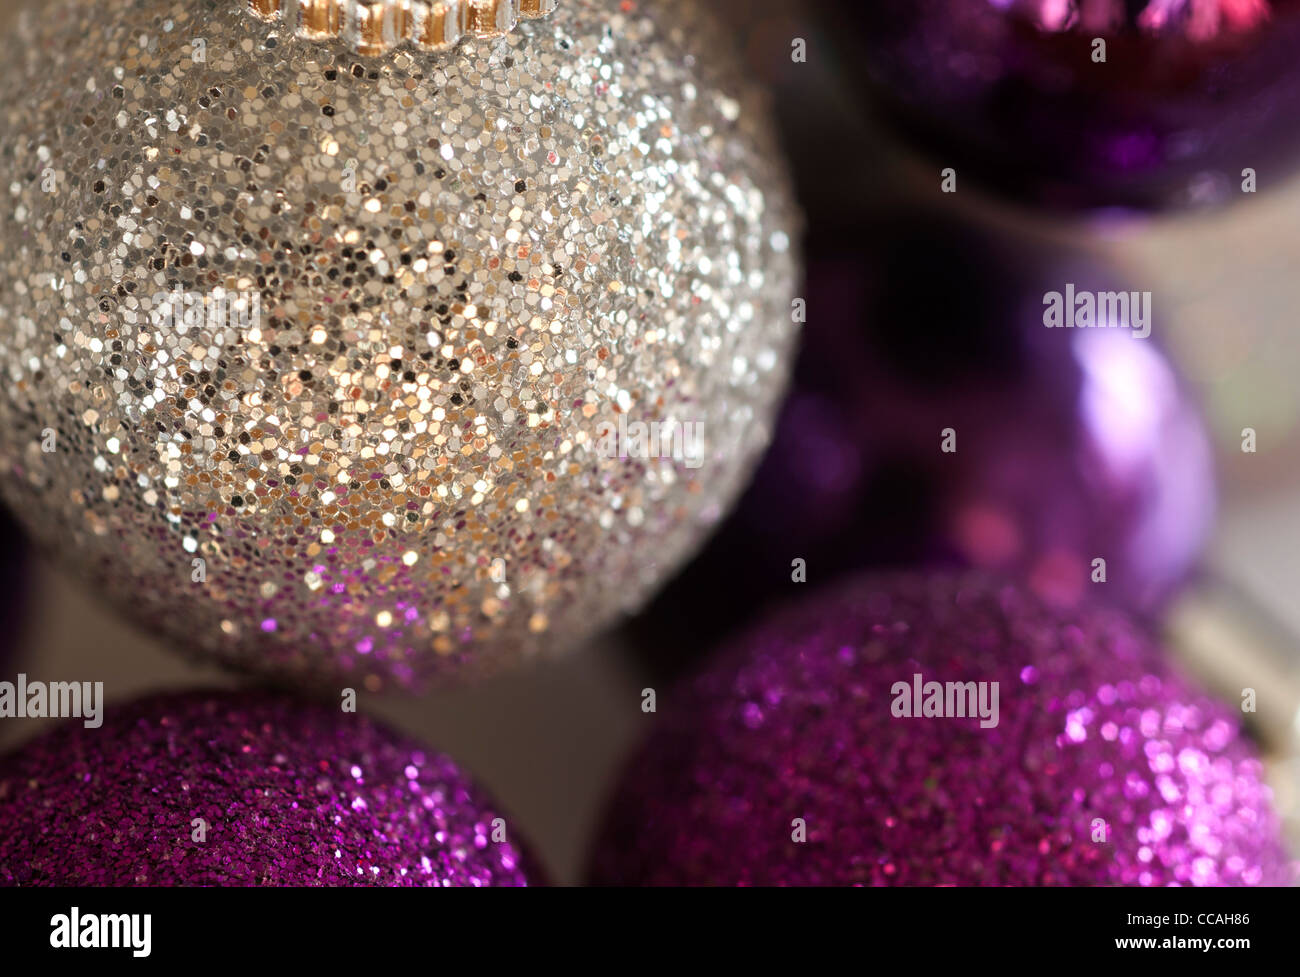 silver and purple glittery christmas tree decorations